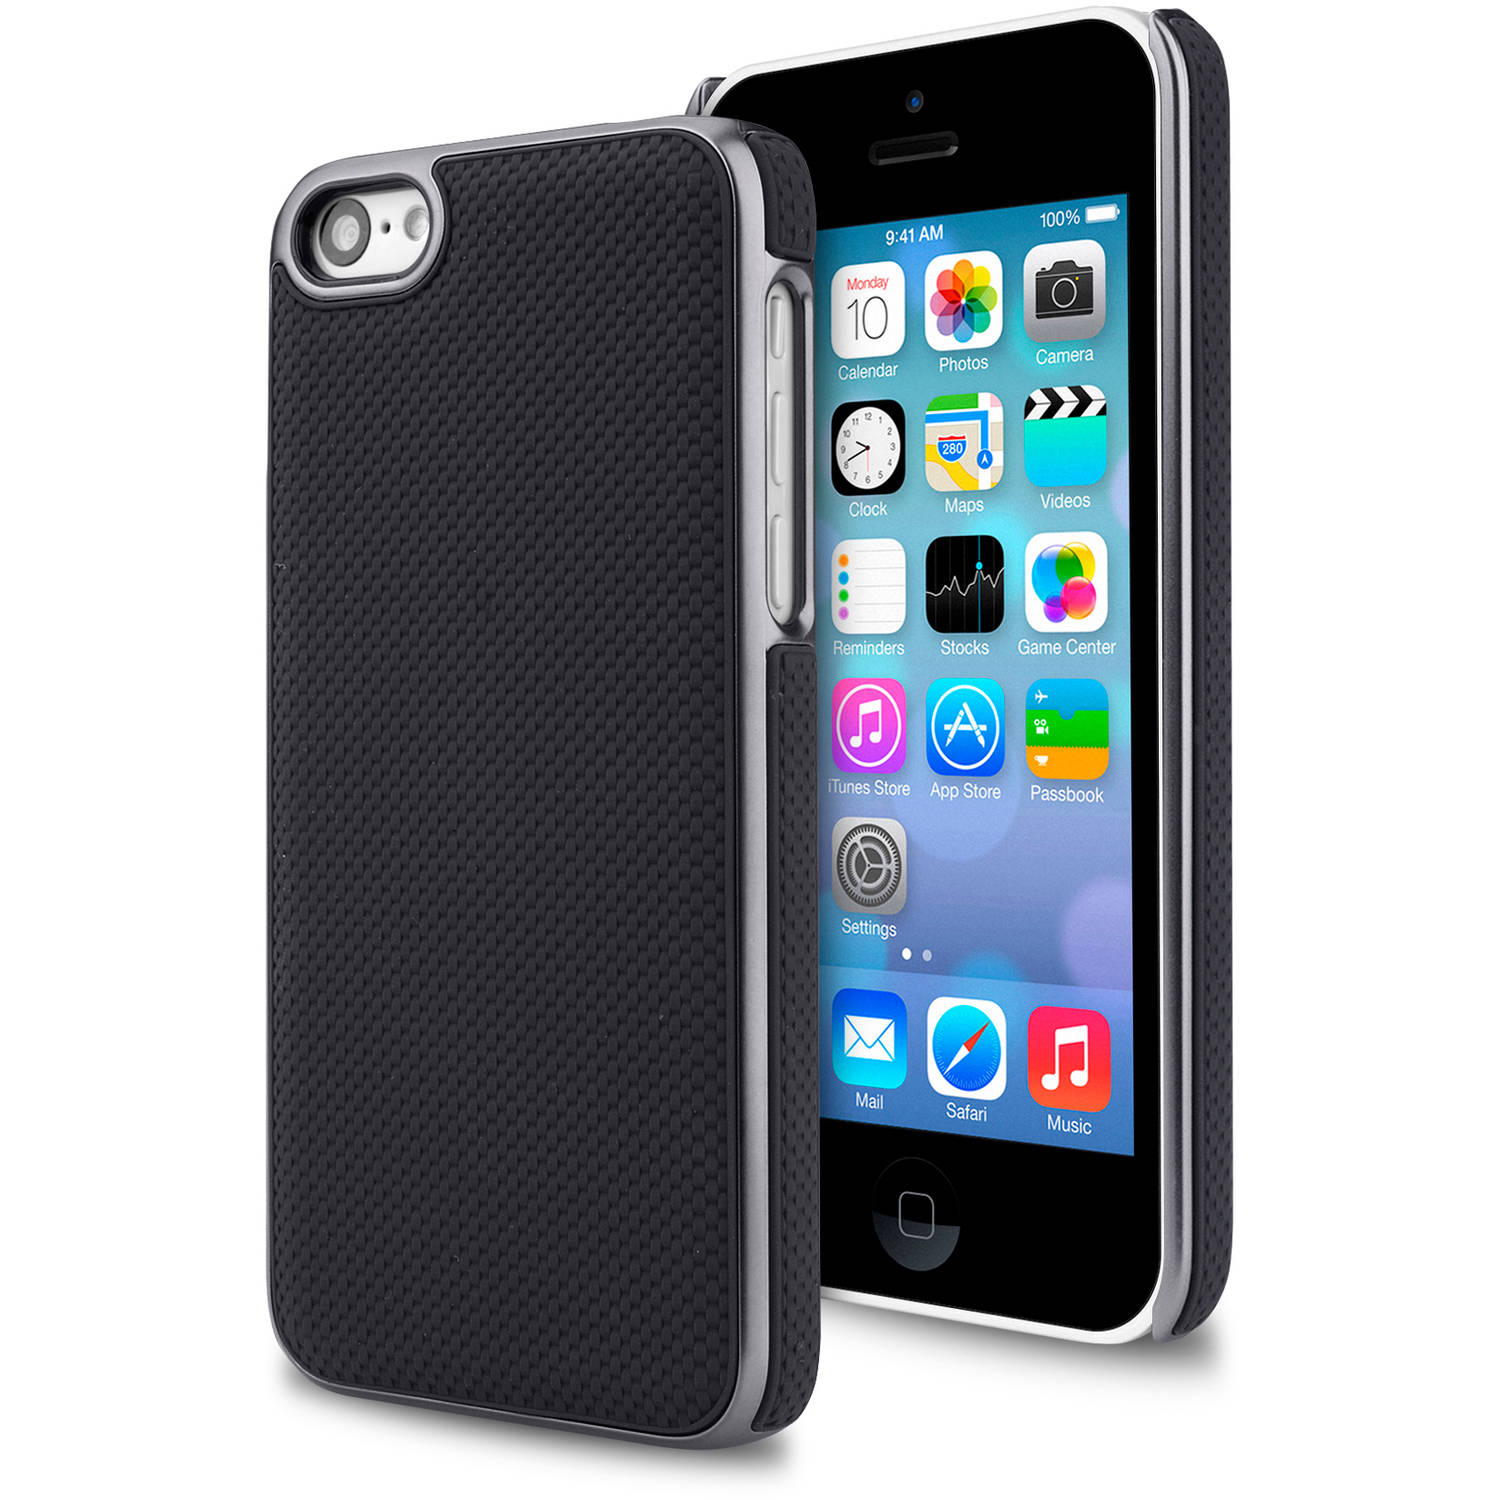 Apple iPhone 5C Executive Case, Black